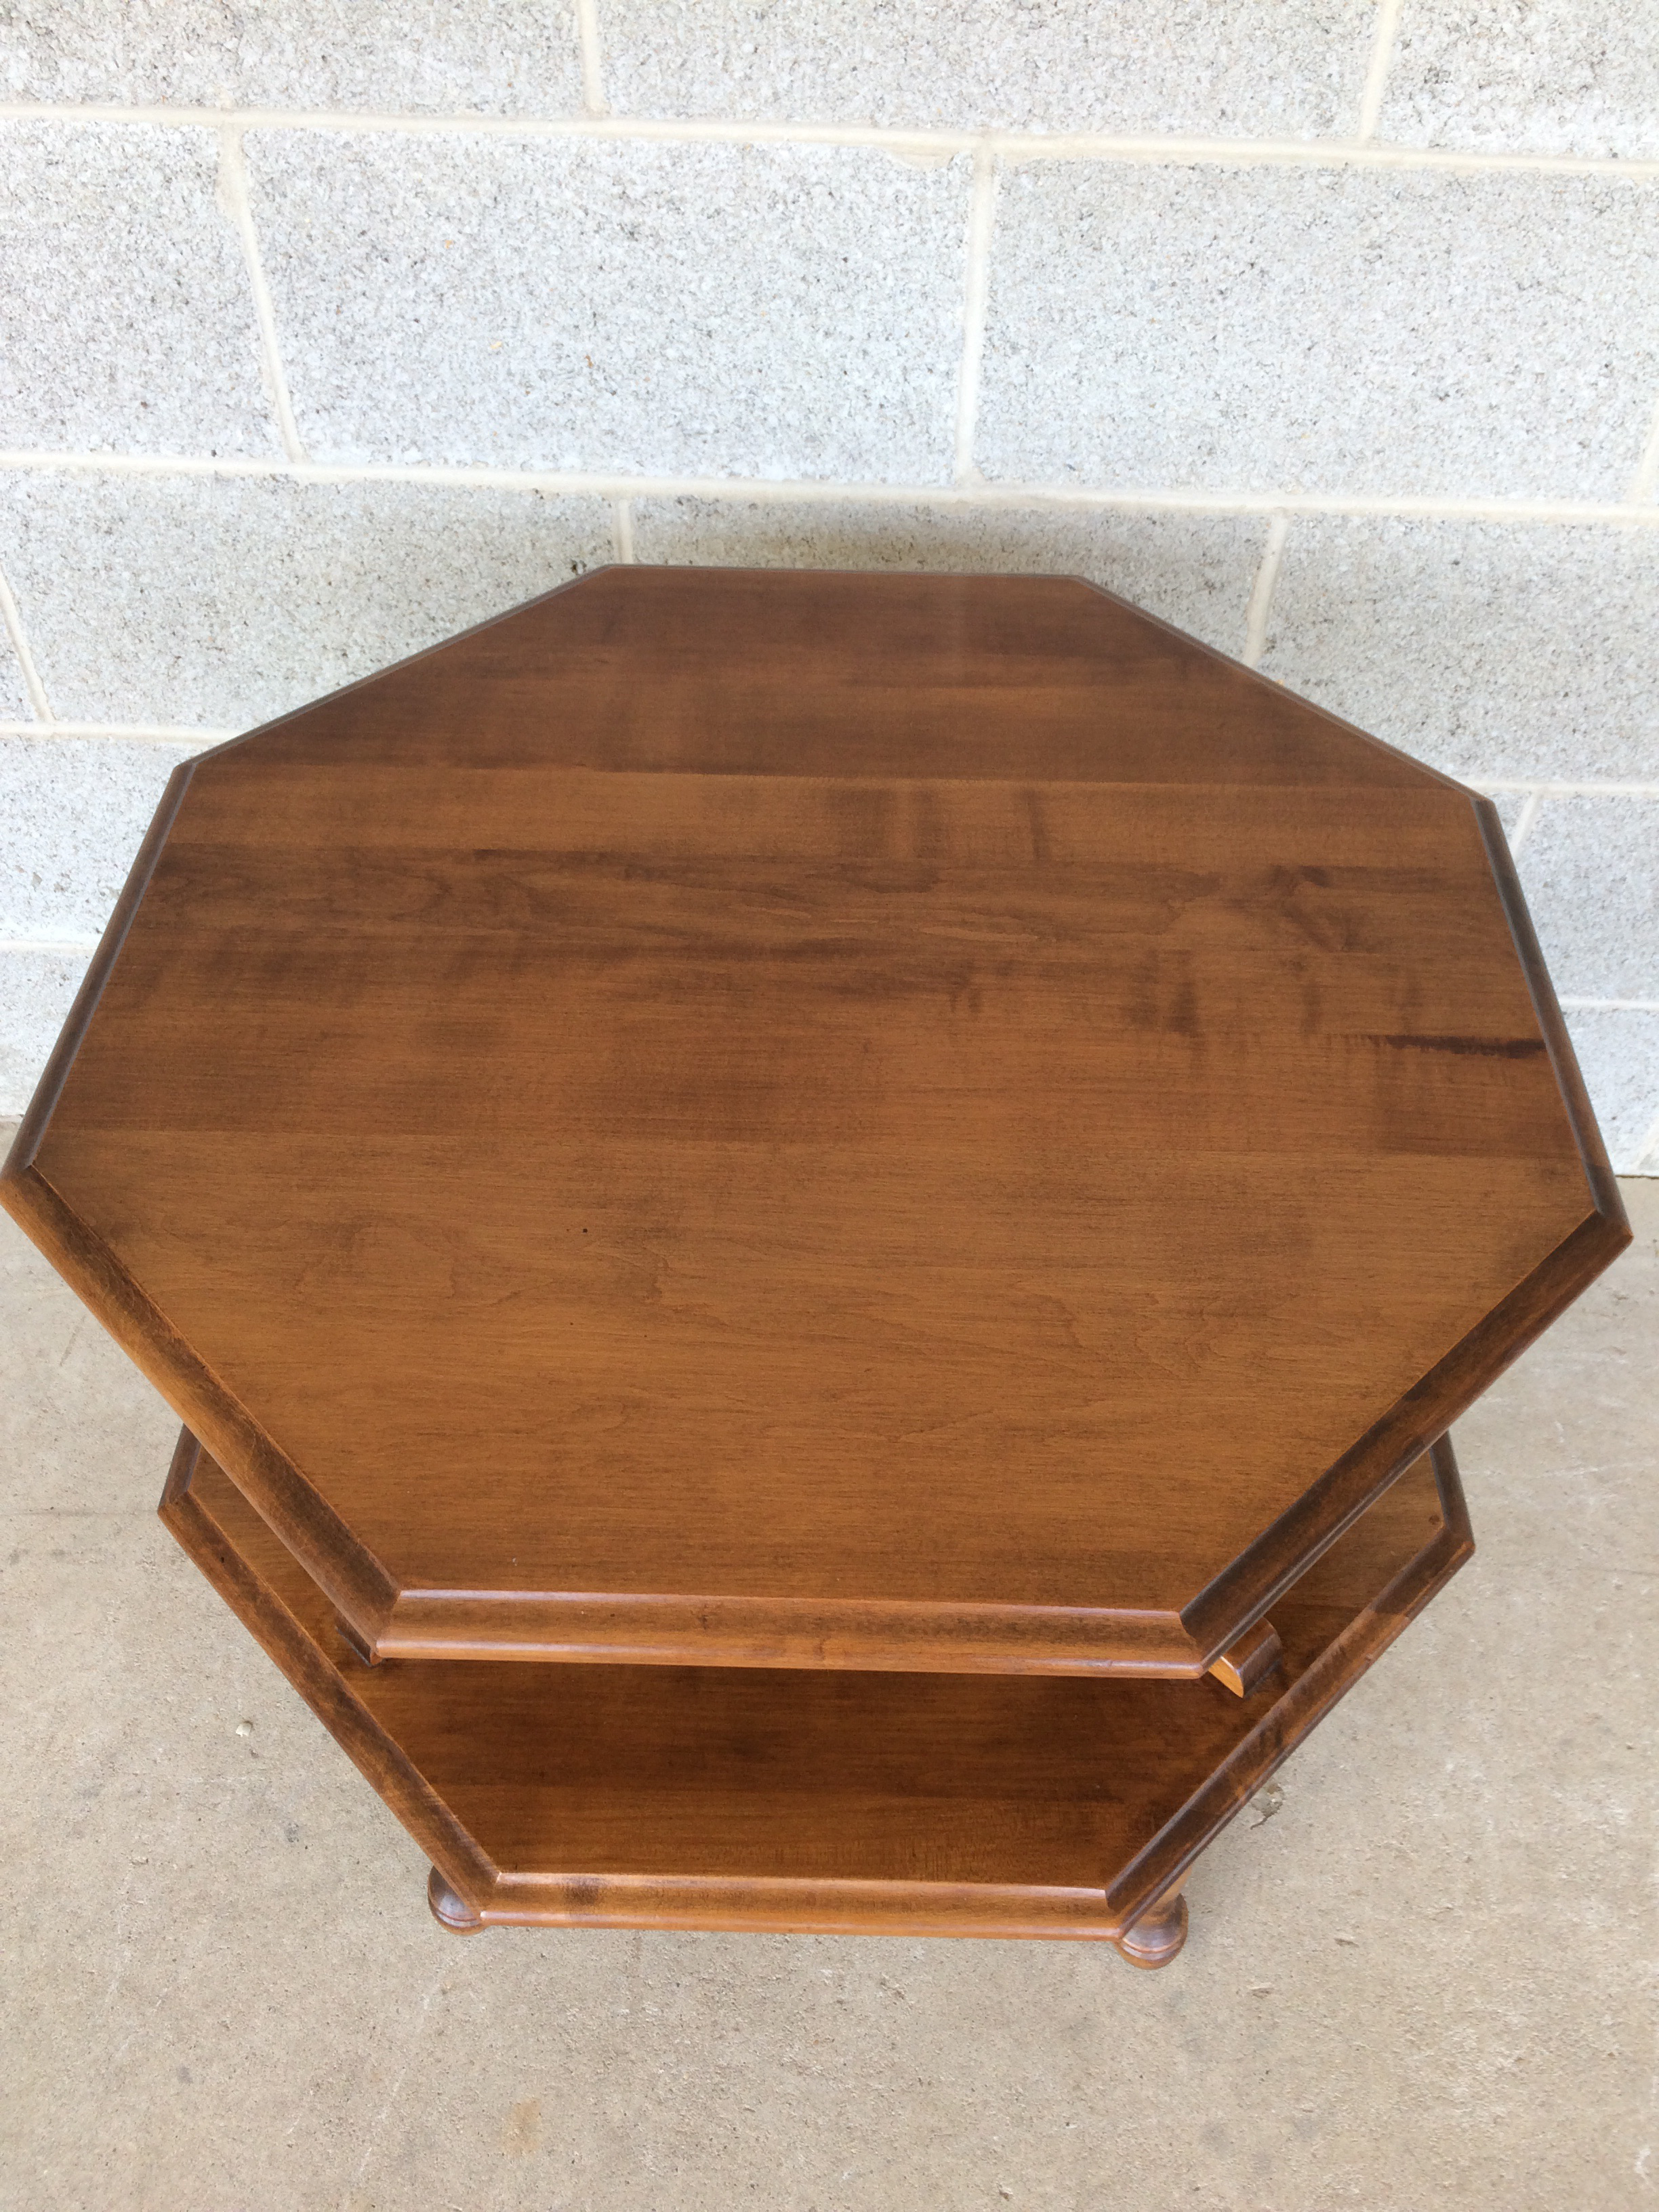 Moosehead Furniture 2 Tier Maple End Table   Image 3 Of 8